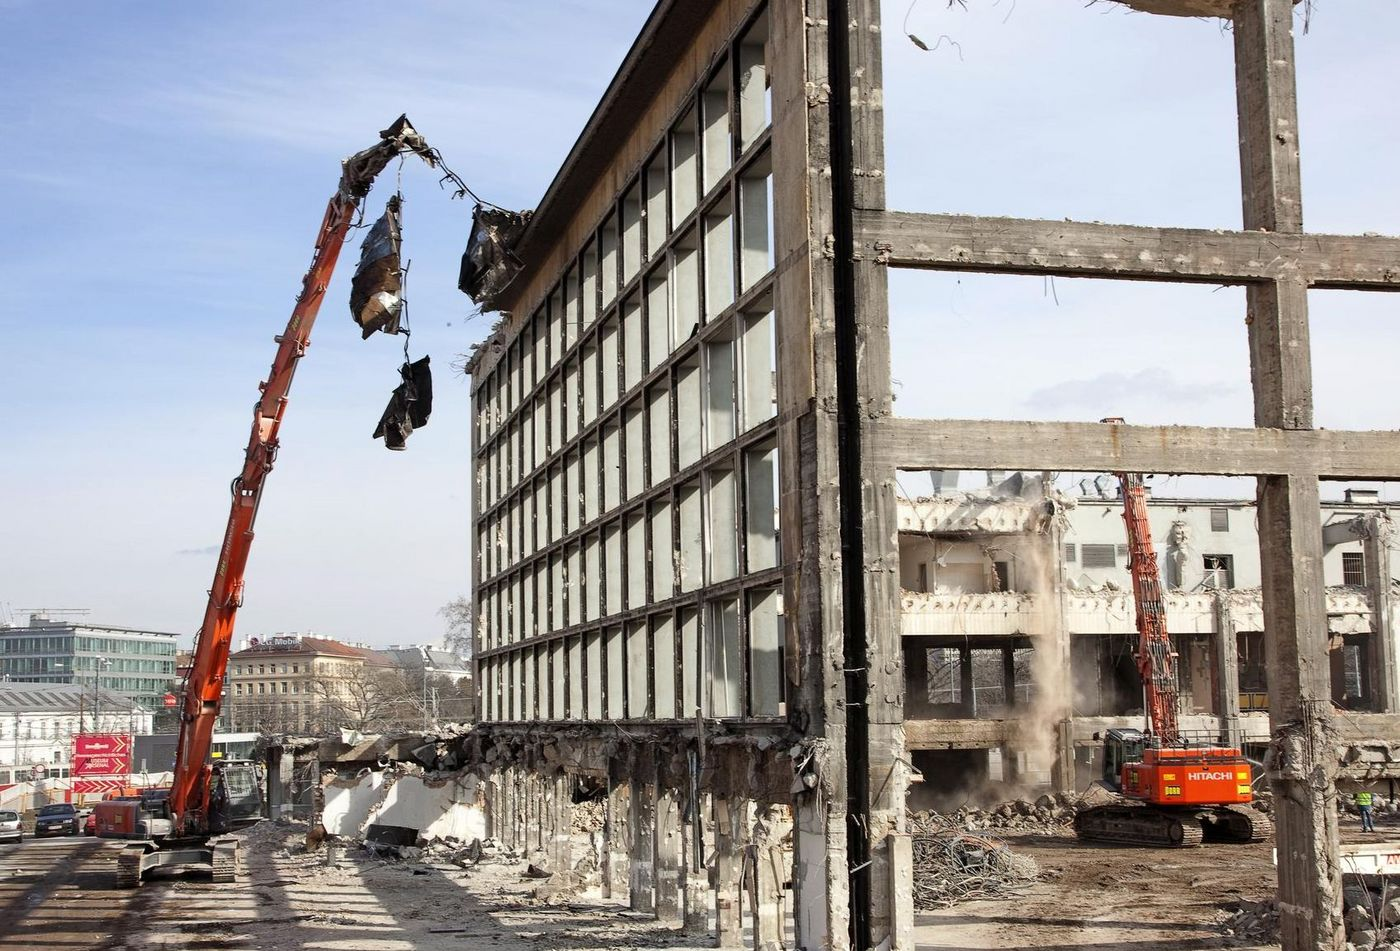 Photo: Demolition of Suedbahnhof Station, Vienna: Cranes successively removing the building's skeleton